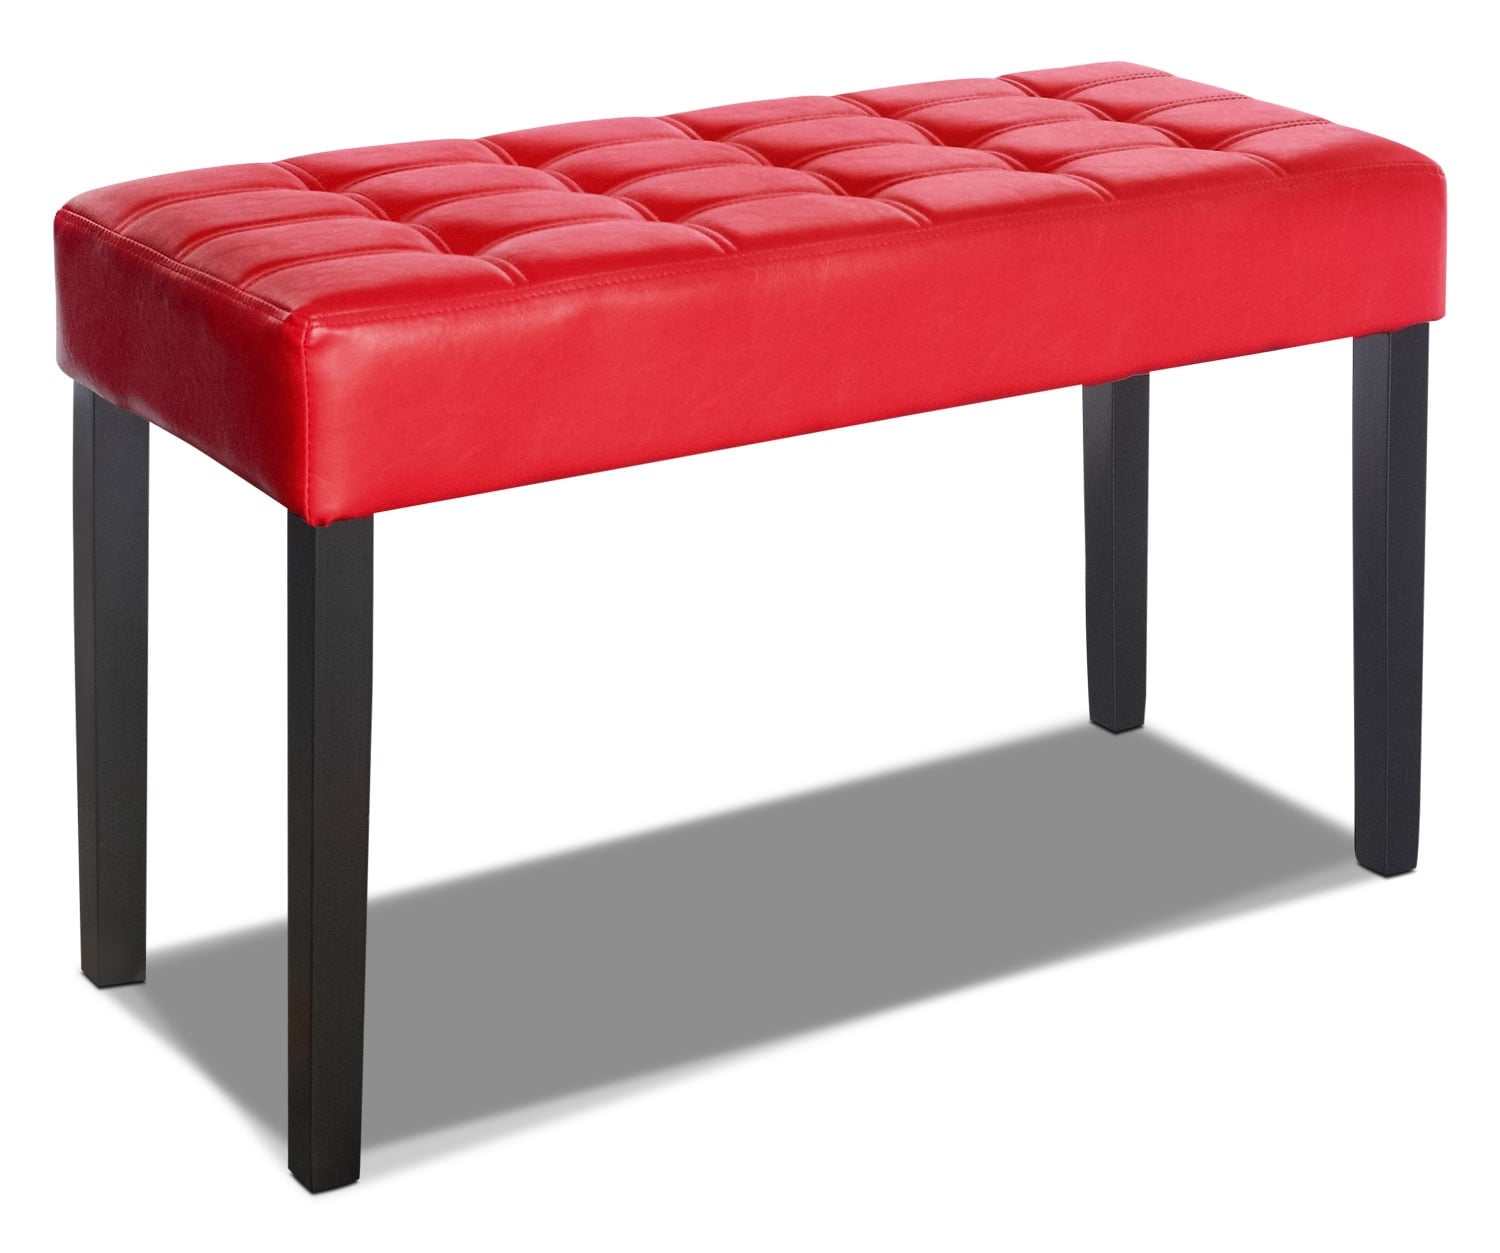 Accent and Occasional Furniture - Cali Tufted Bench – Red